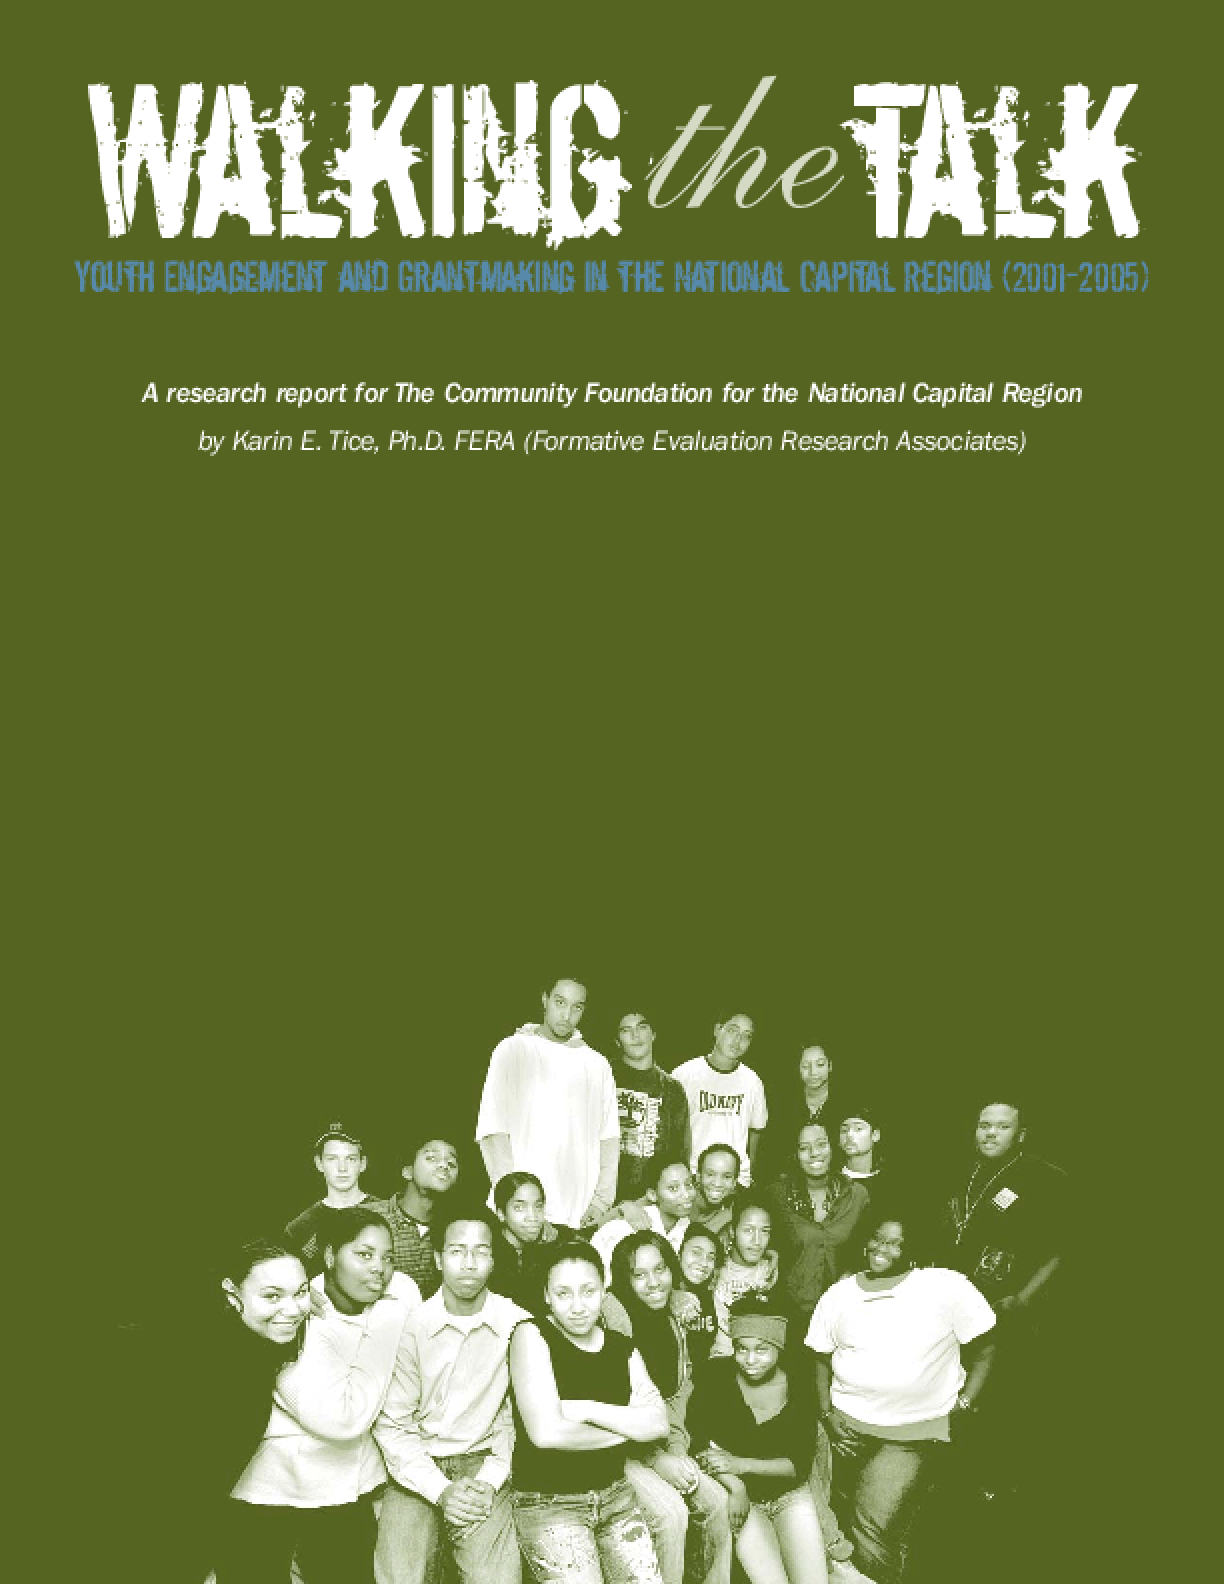 Walking the Talk: Youth Engagement and Grantmaking in the National Capital Region (2001-2005)